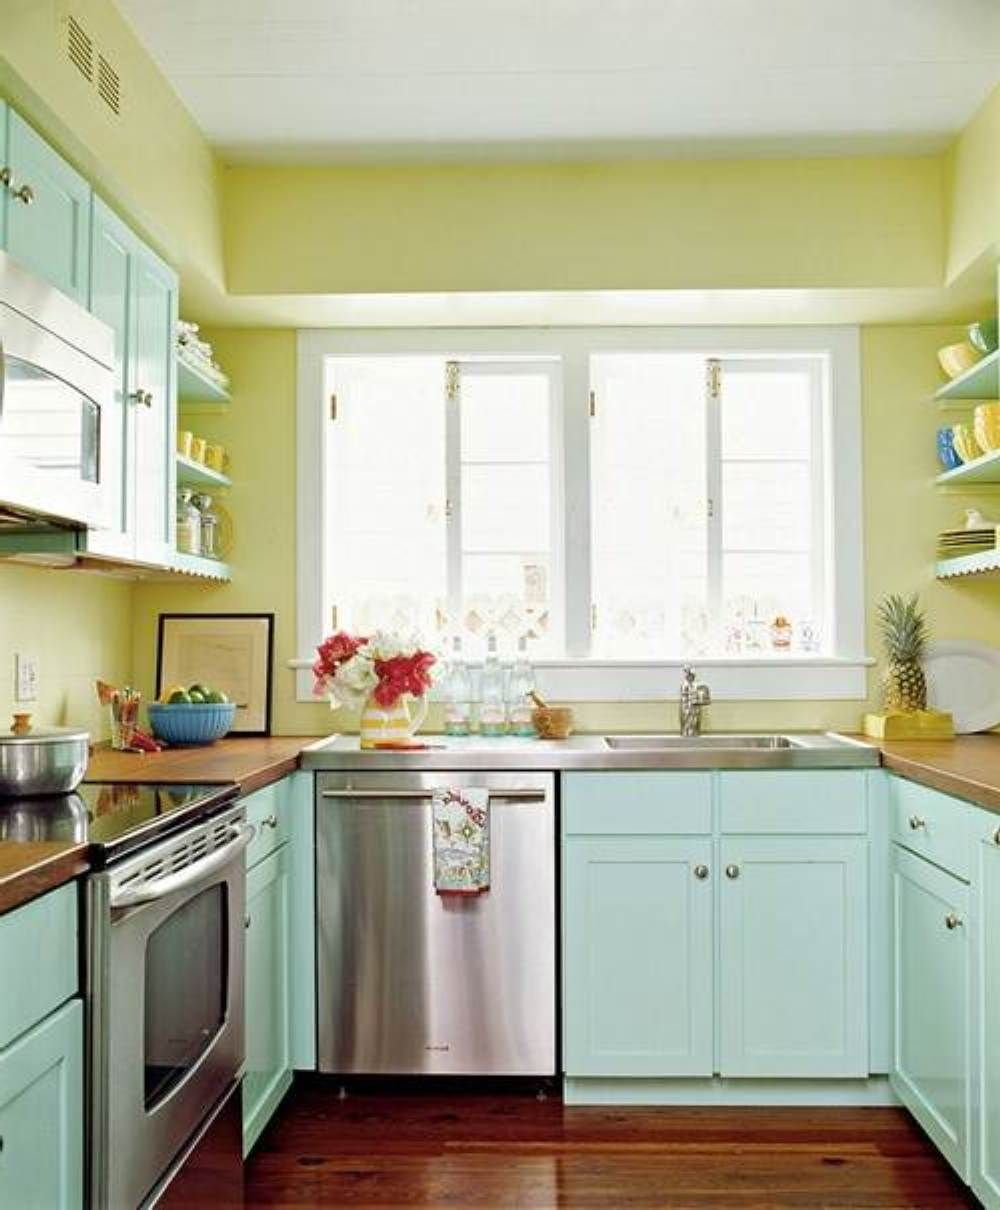 Silver Fox Paint Kitchen: Small Kitchen Design Ideas